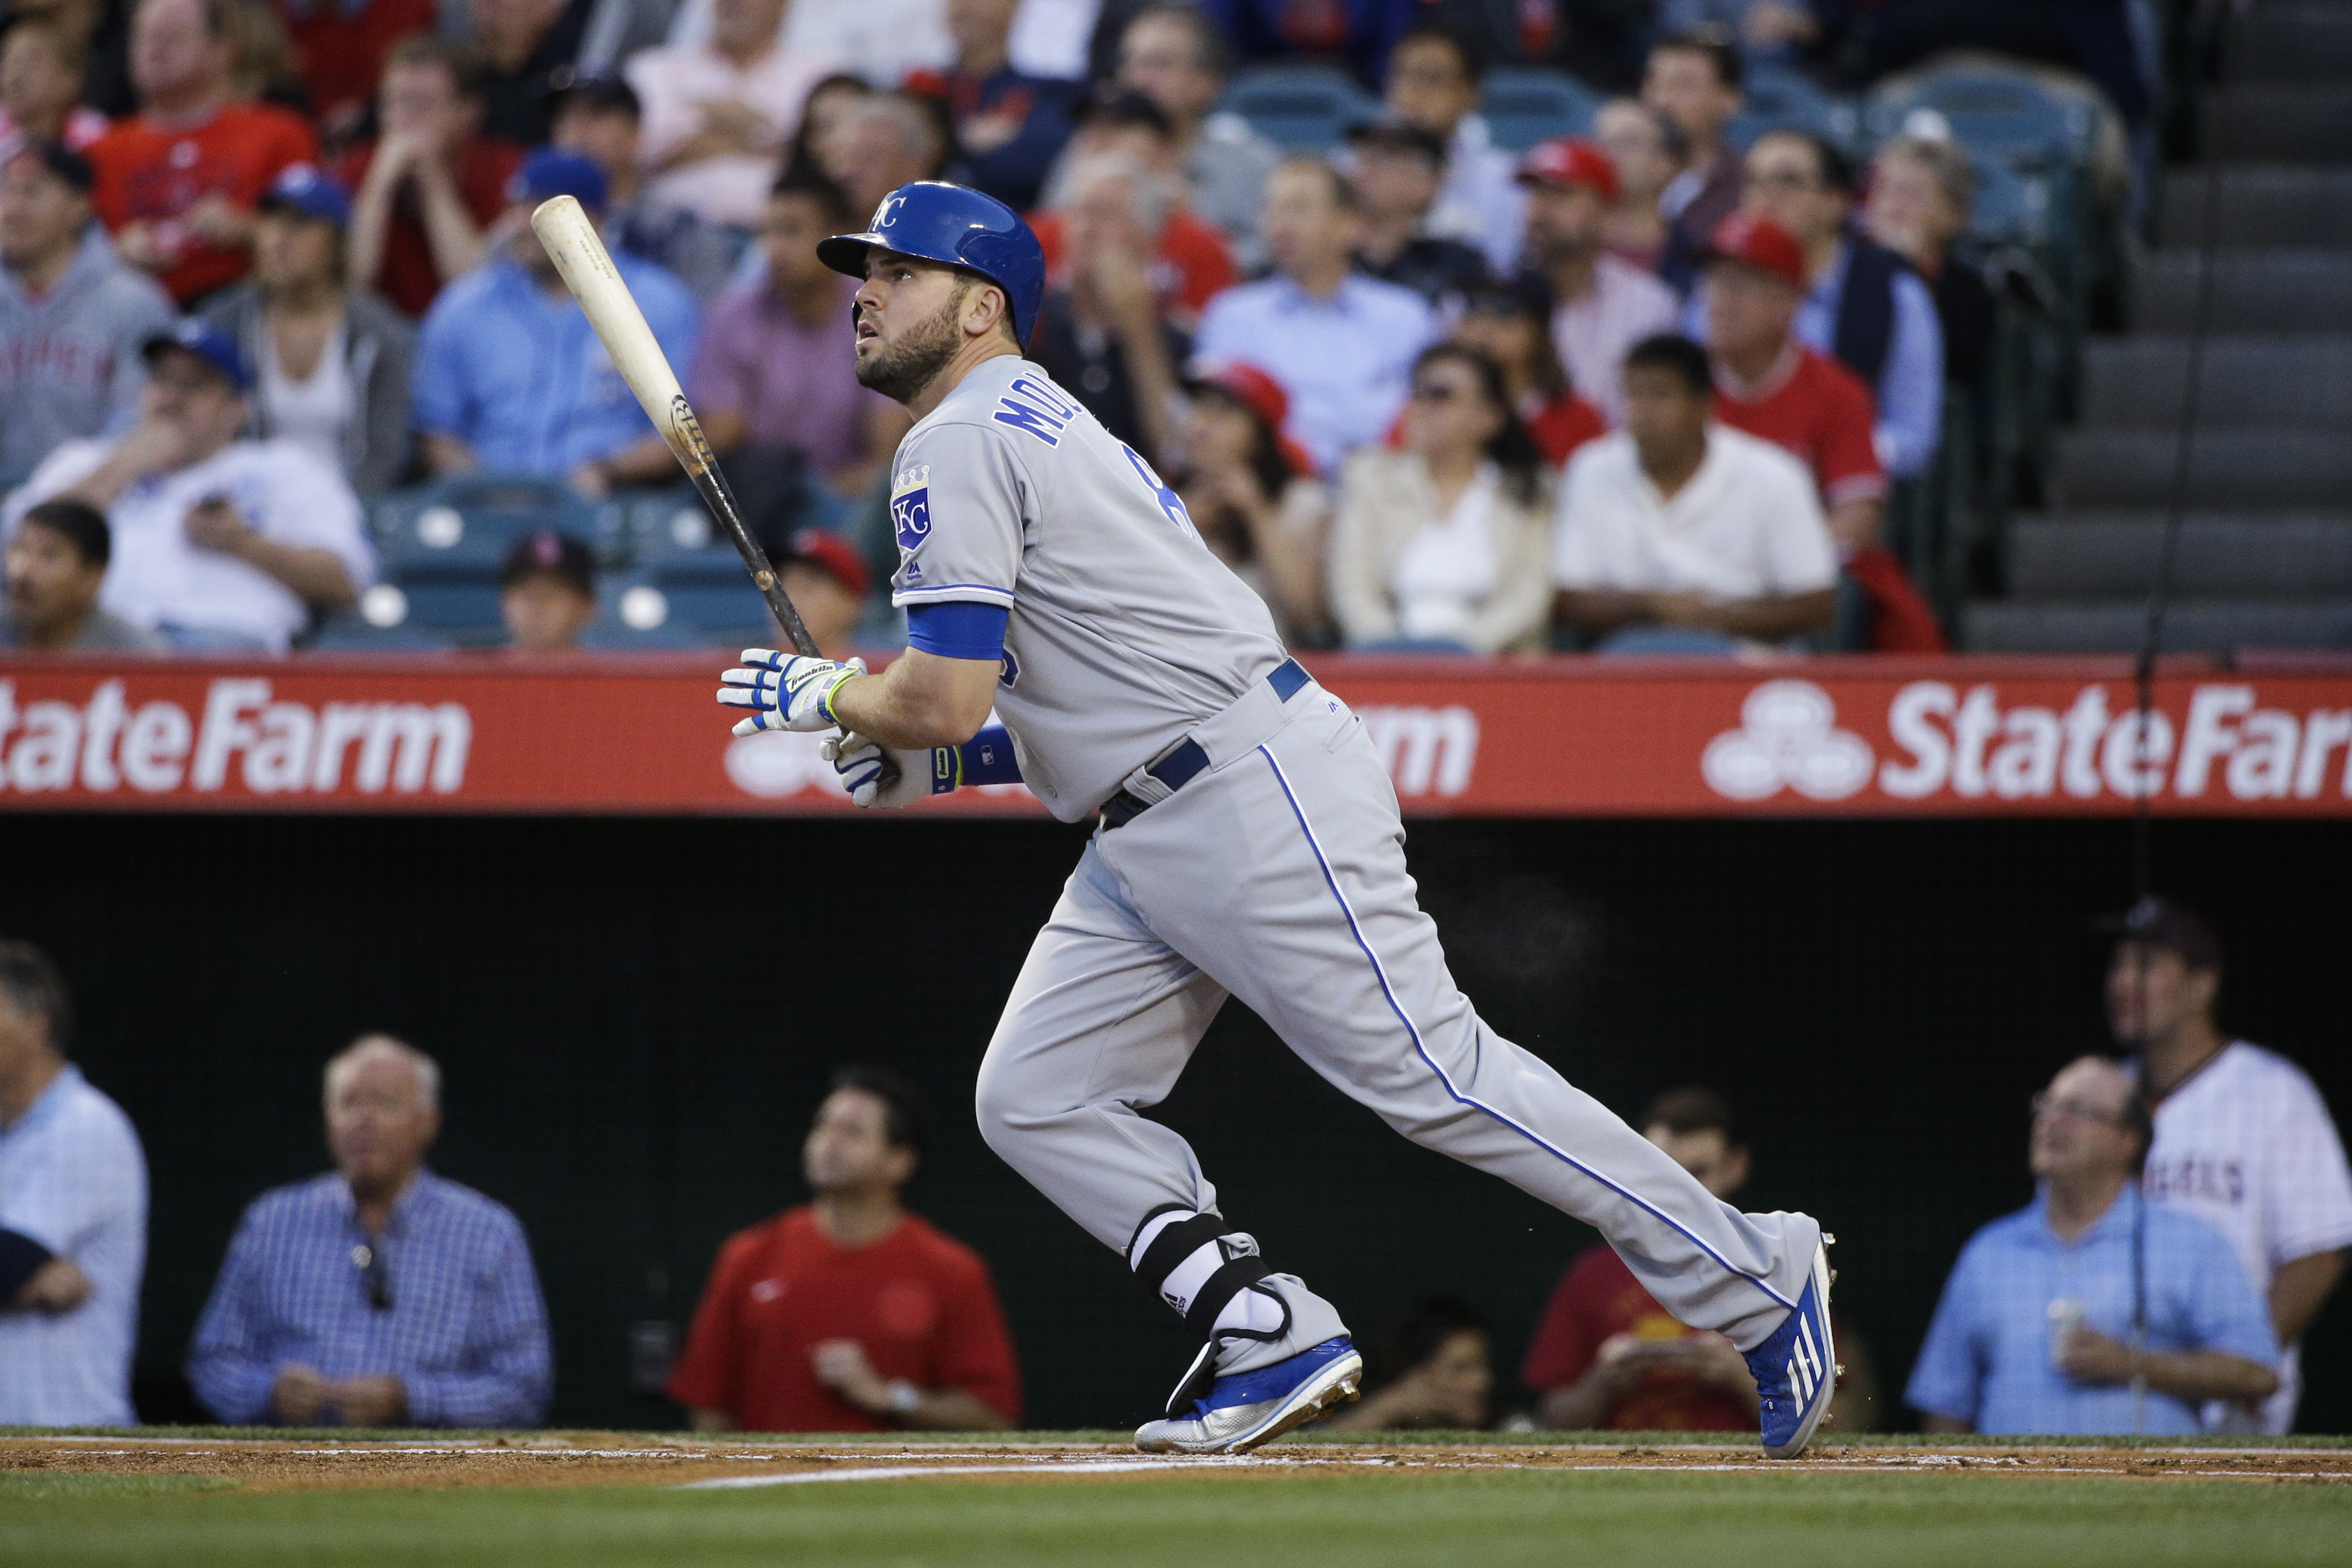 Kansas City Royals' Mike Moustakas watches his home run during the first inning of a baseball game against the Los Angeles Angels, Tuesday, April 26, 2016, in Anaheim, Calif. (AP Photo/Jae C. Hong)